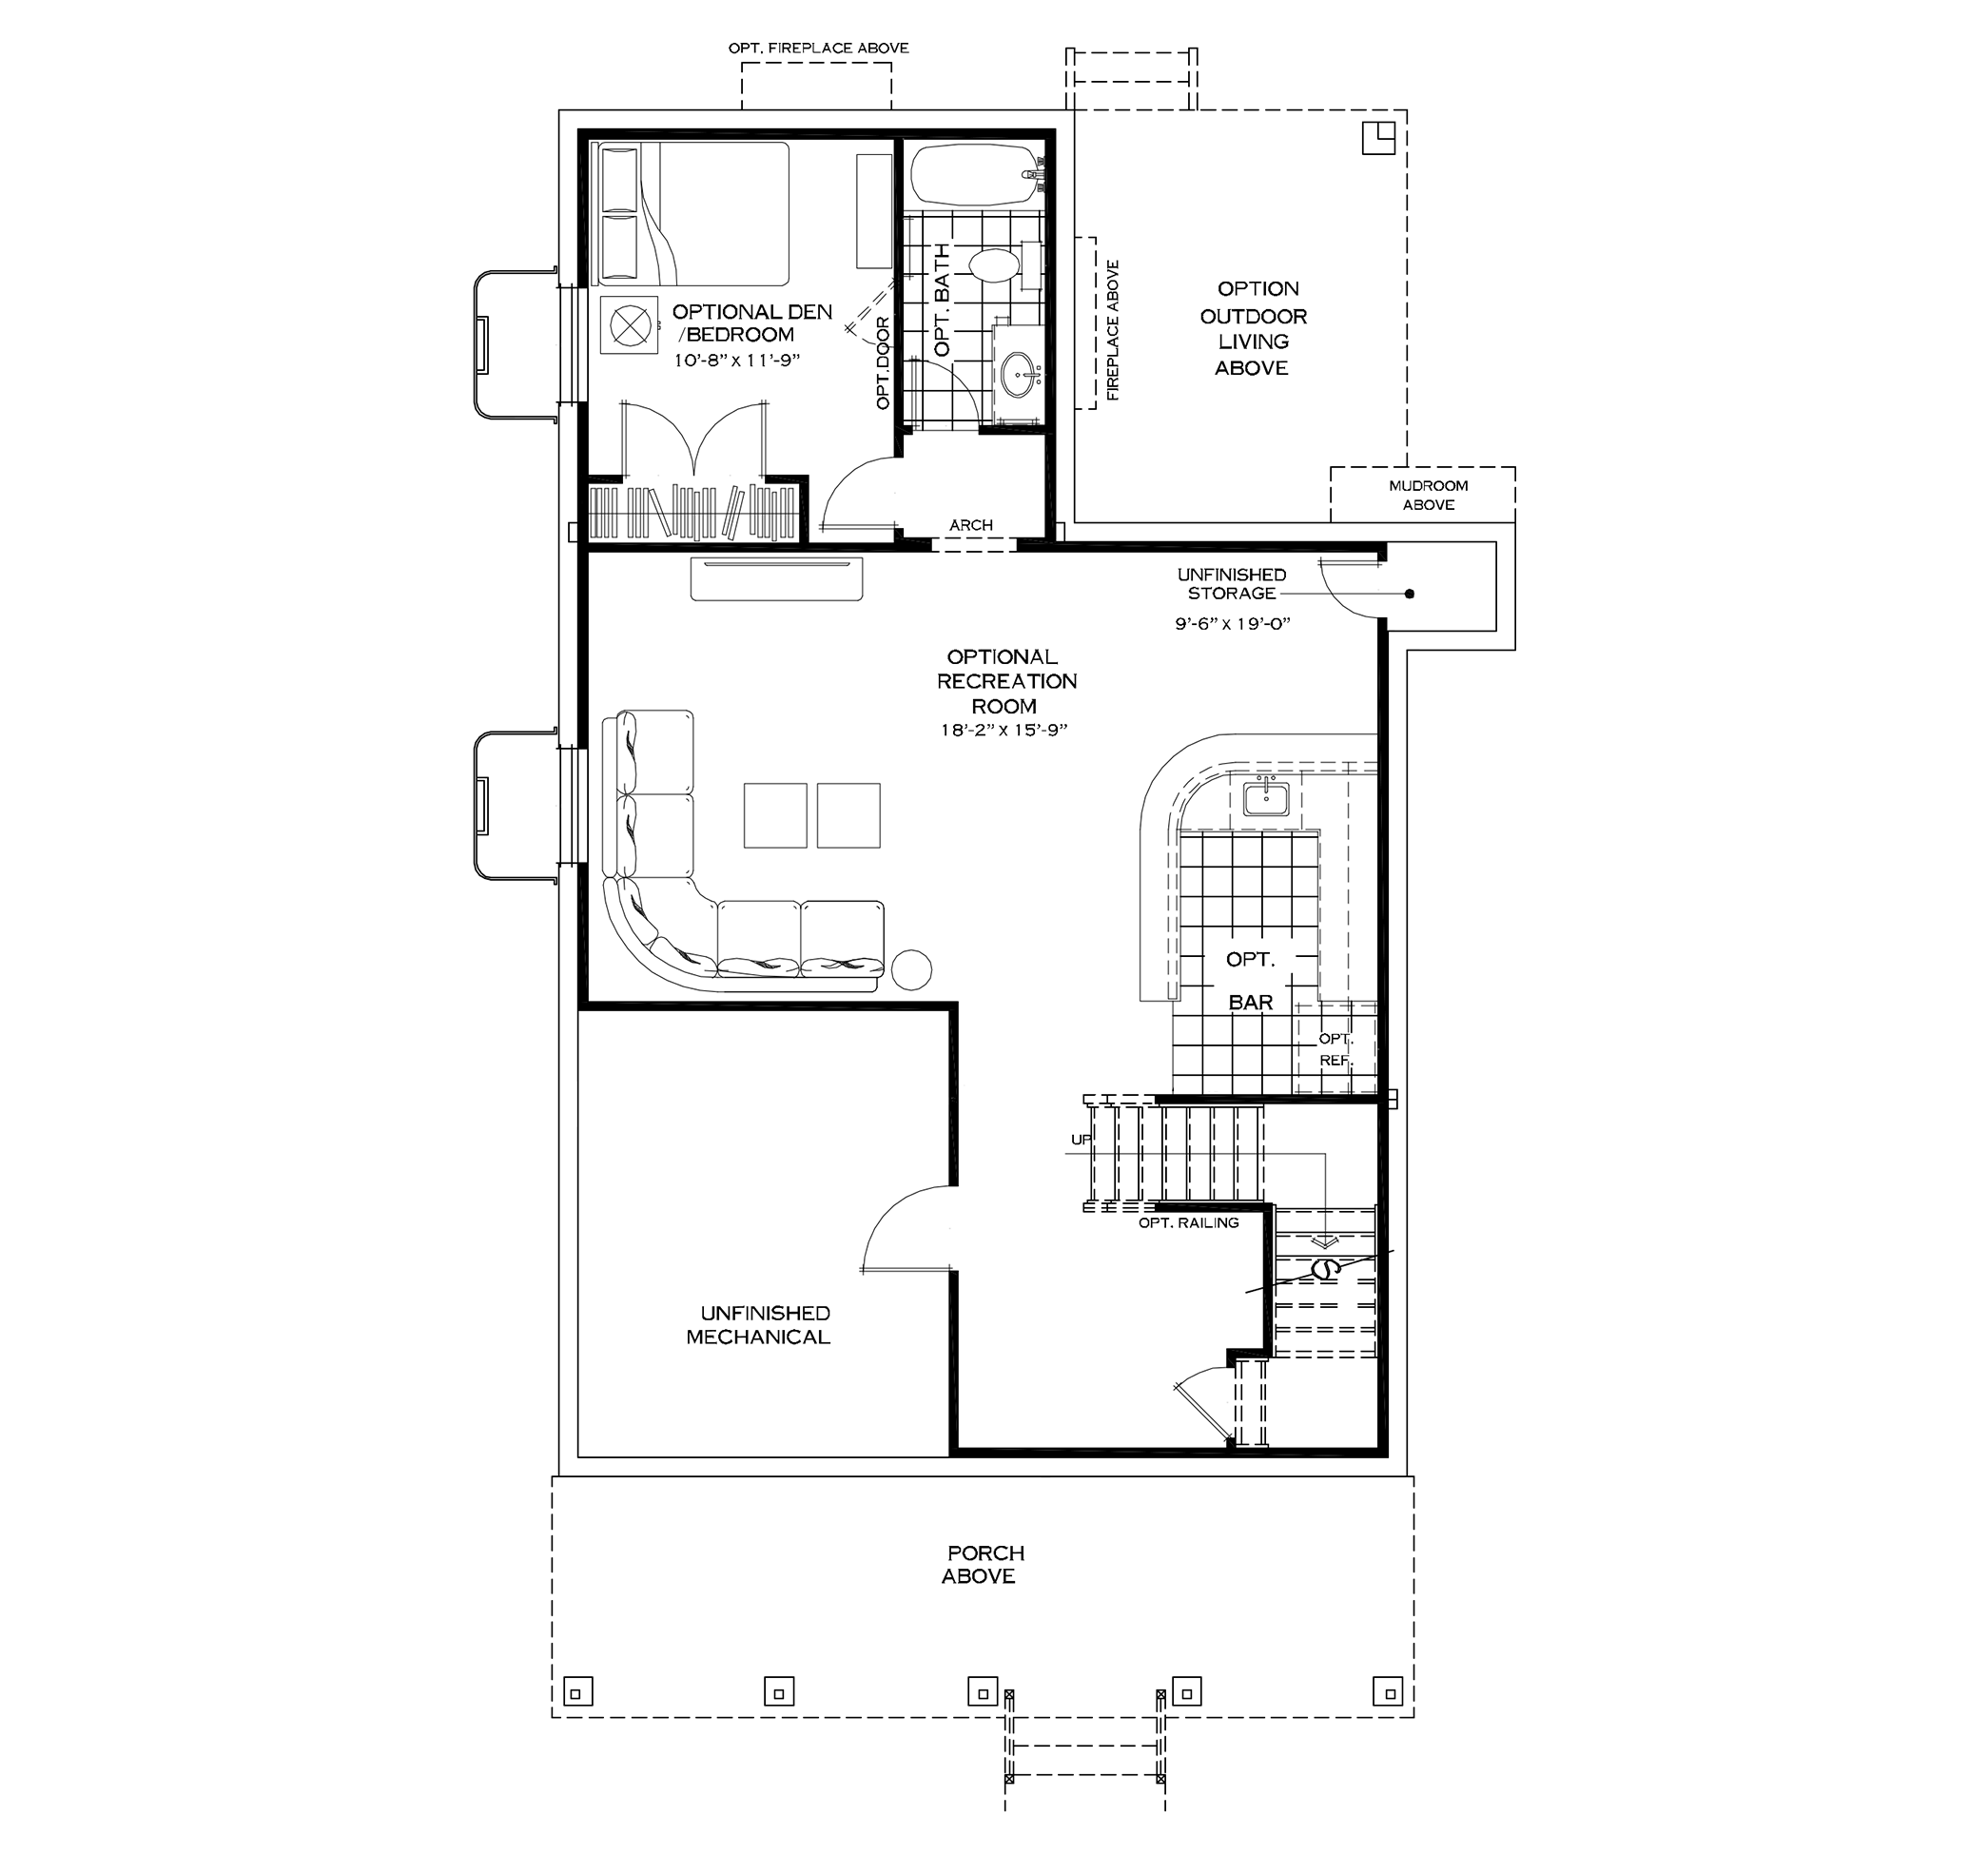 Optional Finished Basement with Mudroom on First Floor